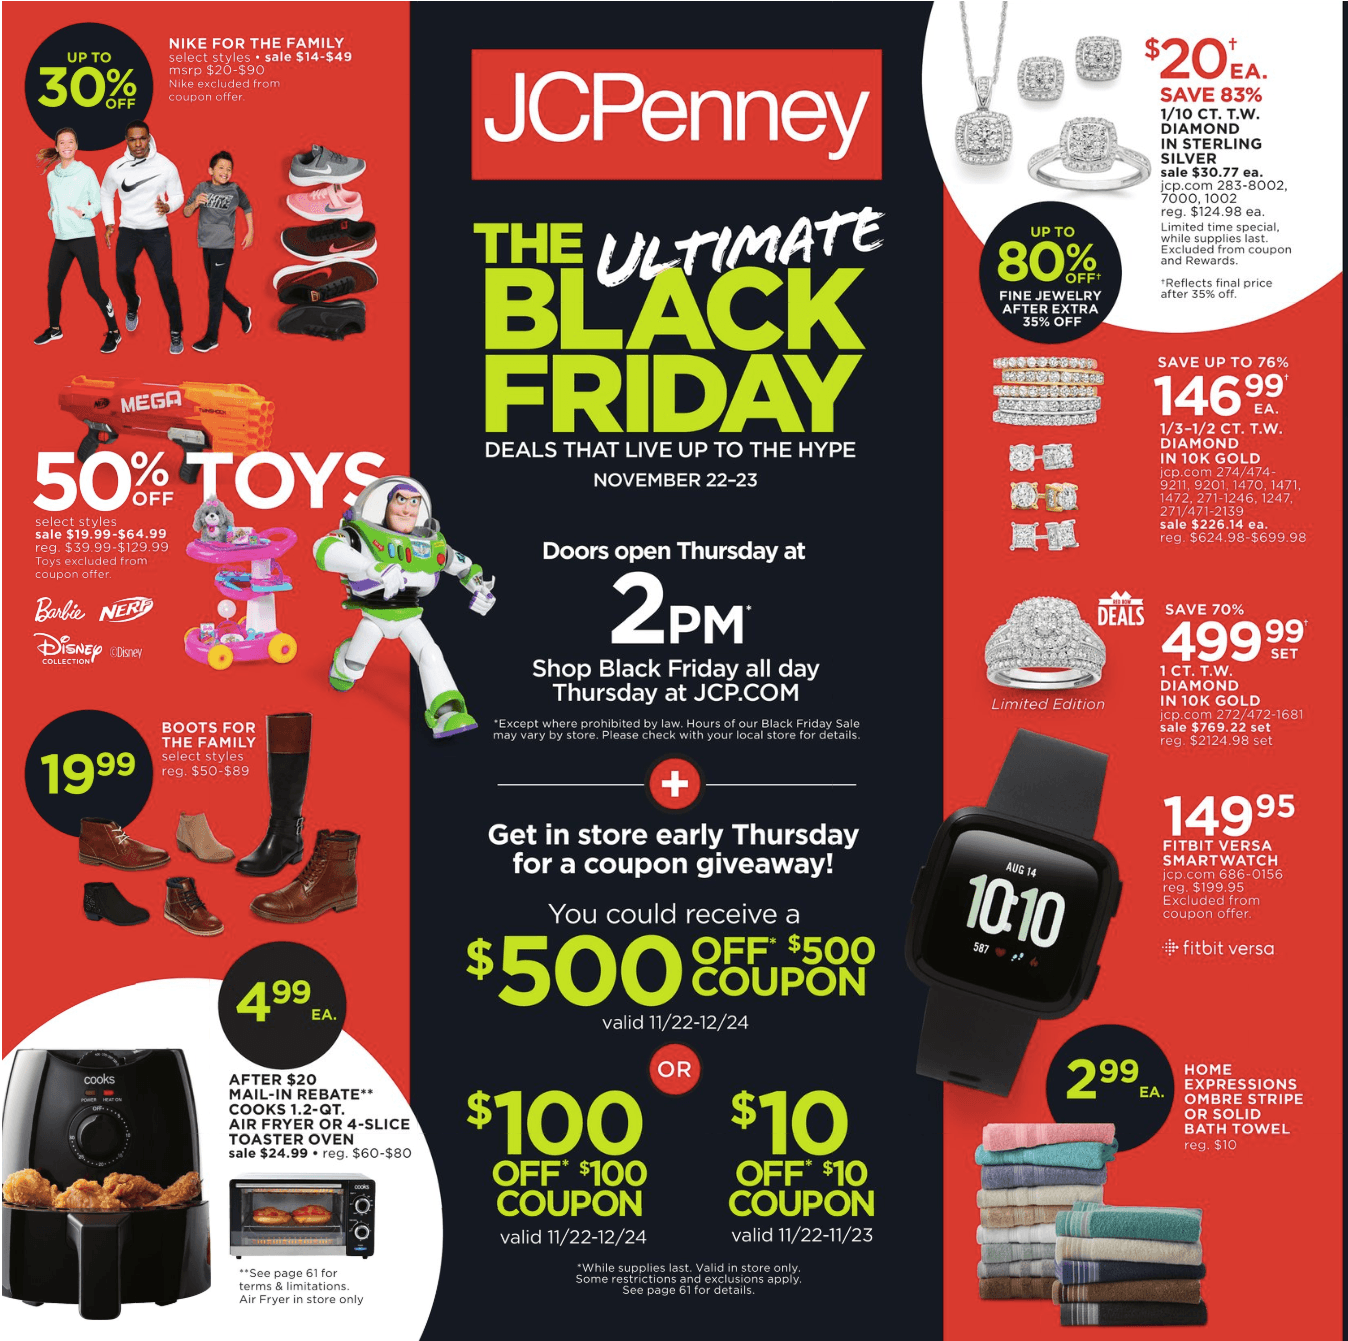 aa8ca358c JCPenney Black Friday 2018 Ad